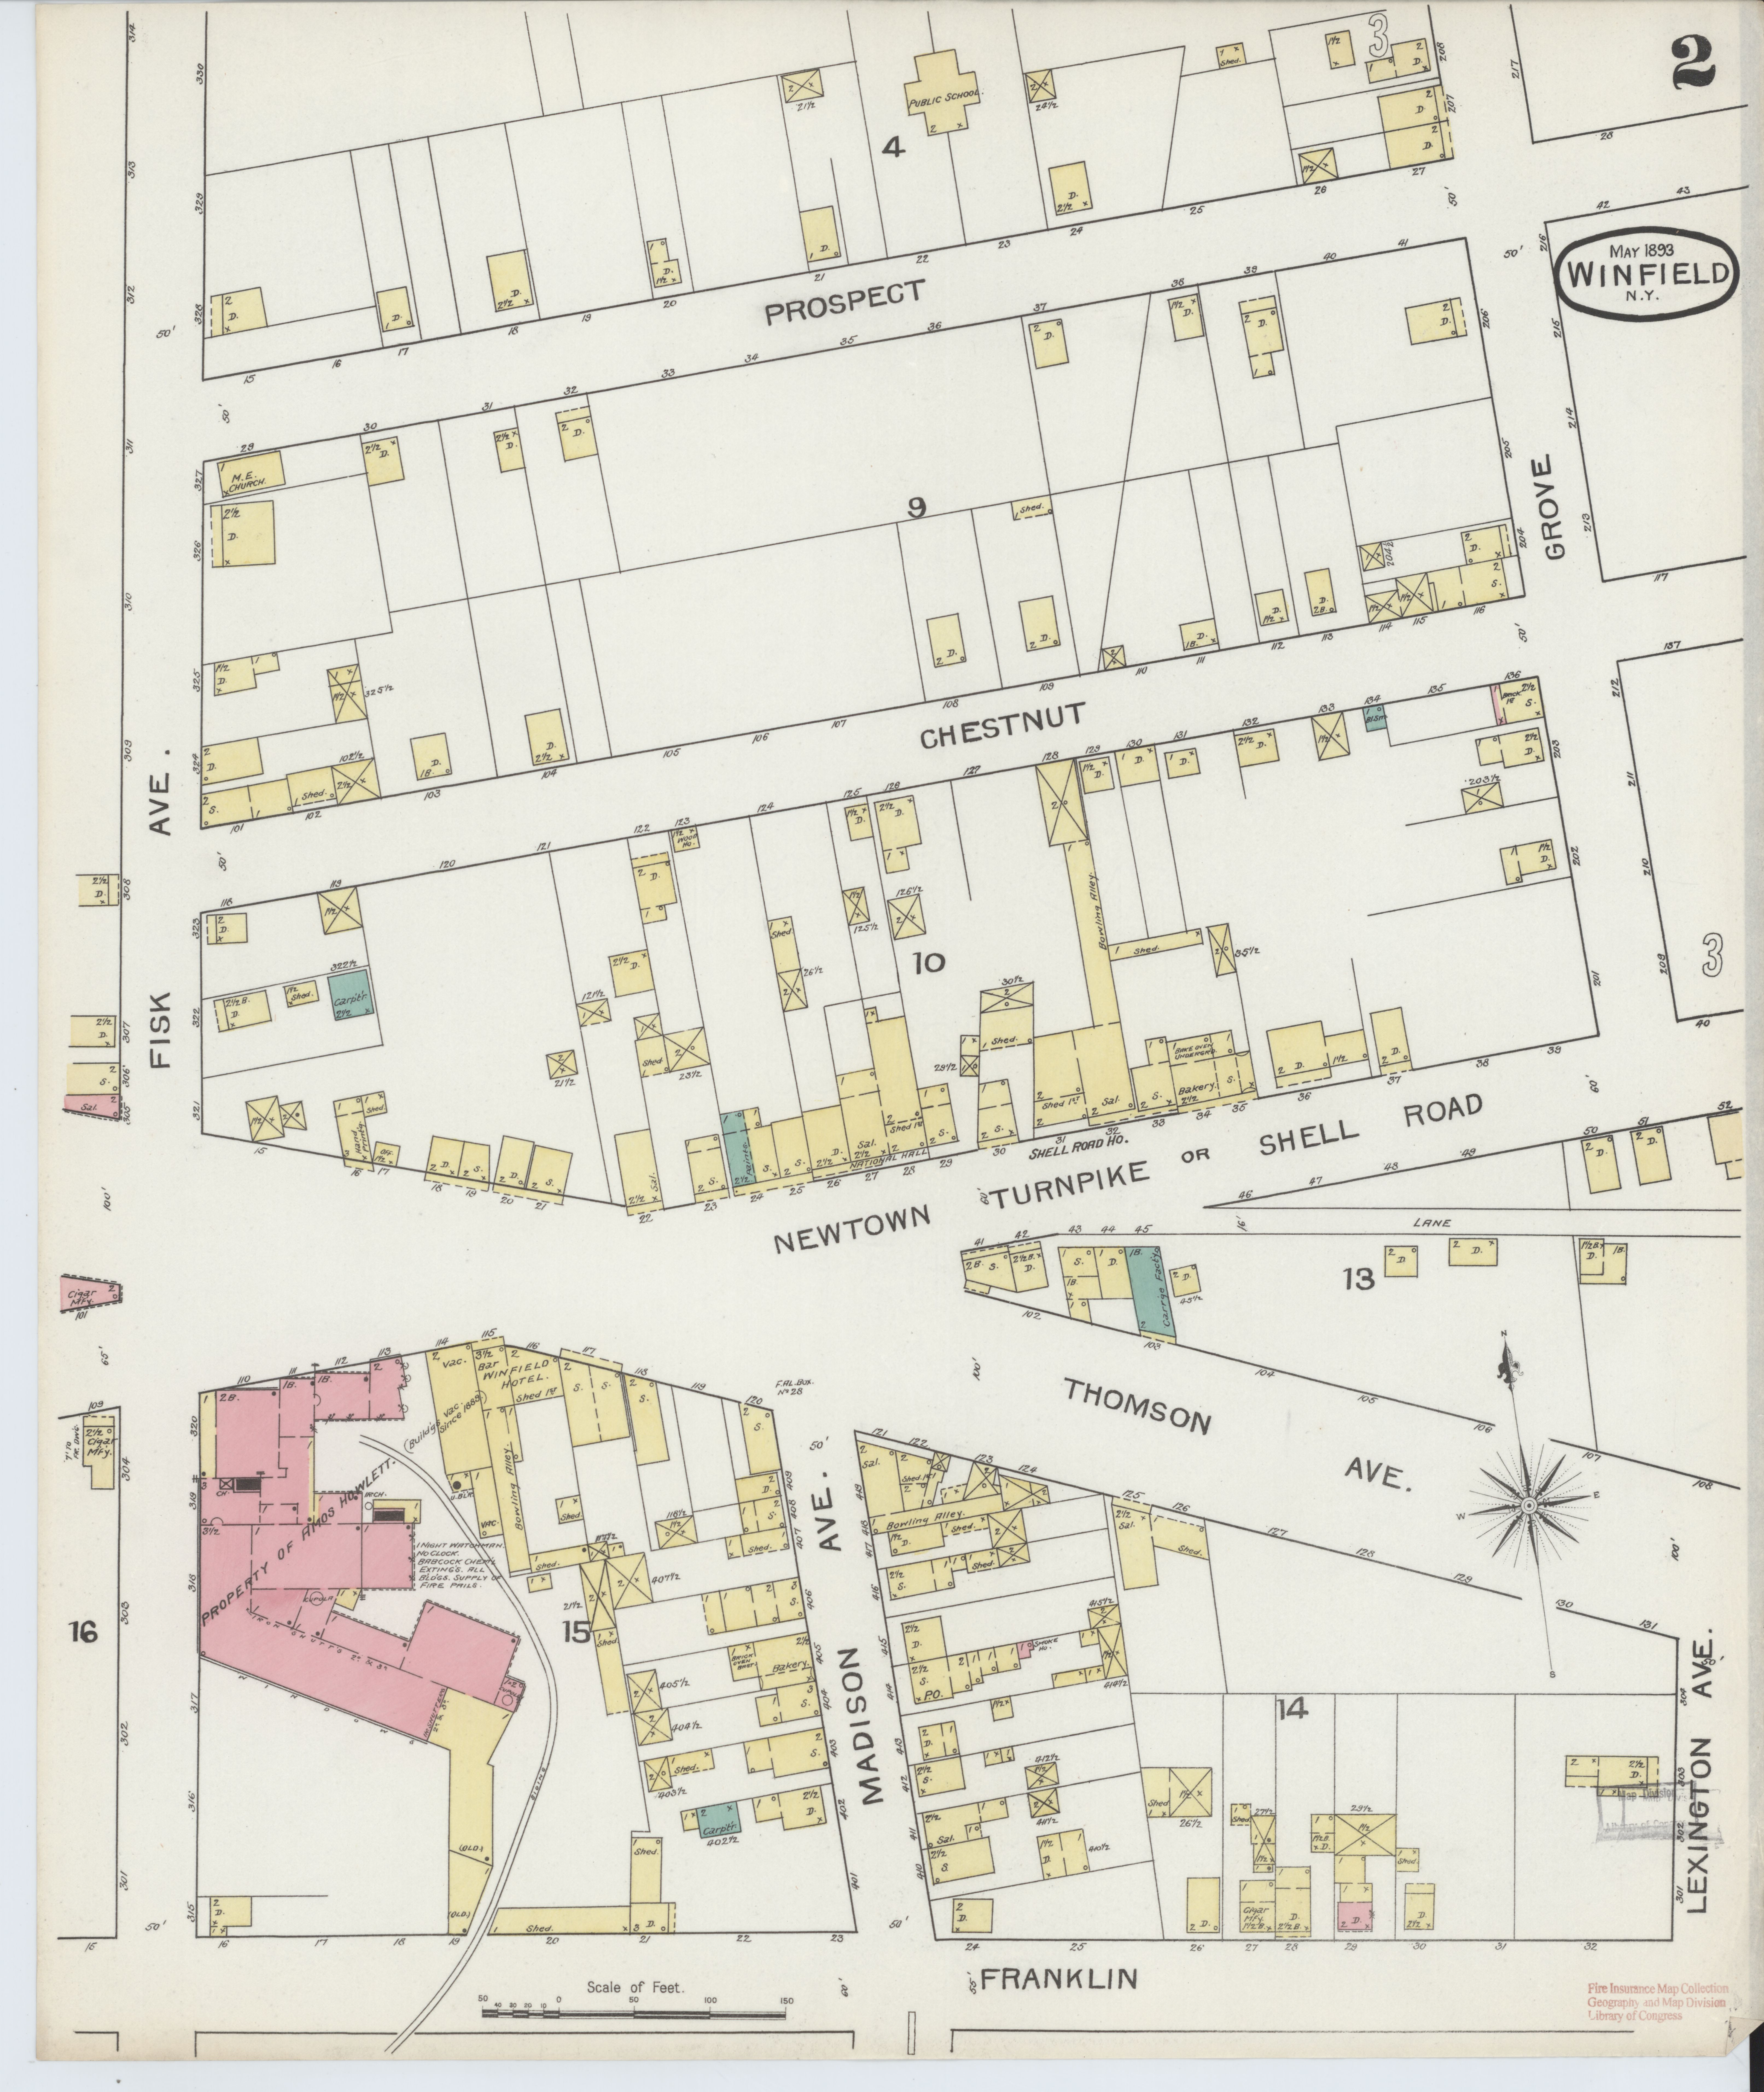 File:Sanborn Fire Insurance Map from Winfield, Queens County ... on map of tillson ny, map of paul smiths ny, map of jackson ny, map of appleton ny, map of north river ny, map of south otselic ny, map of strykersville ny, map of nelson ny, map of le roy ny, map of south colton ny, map of tioga ny, map of kingsbury ny, map of kent ny, map of winthrop ny, map of glenfield ny, map of dickinson ny, map of afton ny, map of pine island ny, map of vernon center ny, map of scipio center ny,